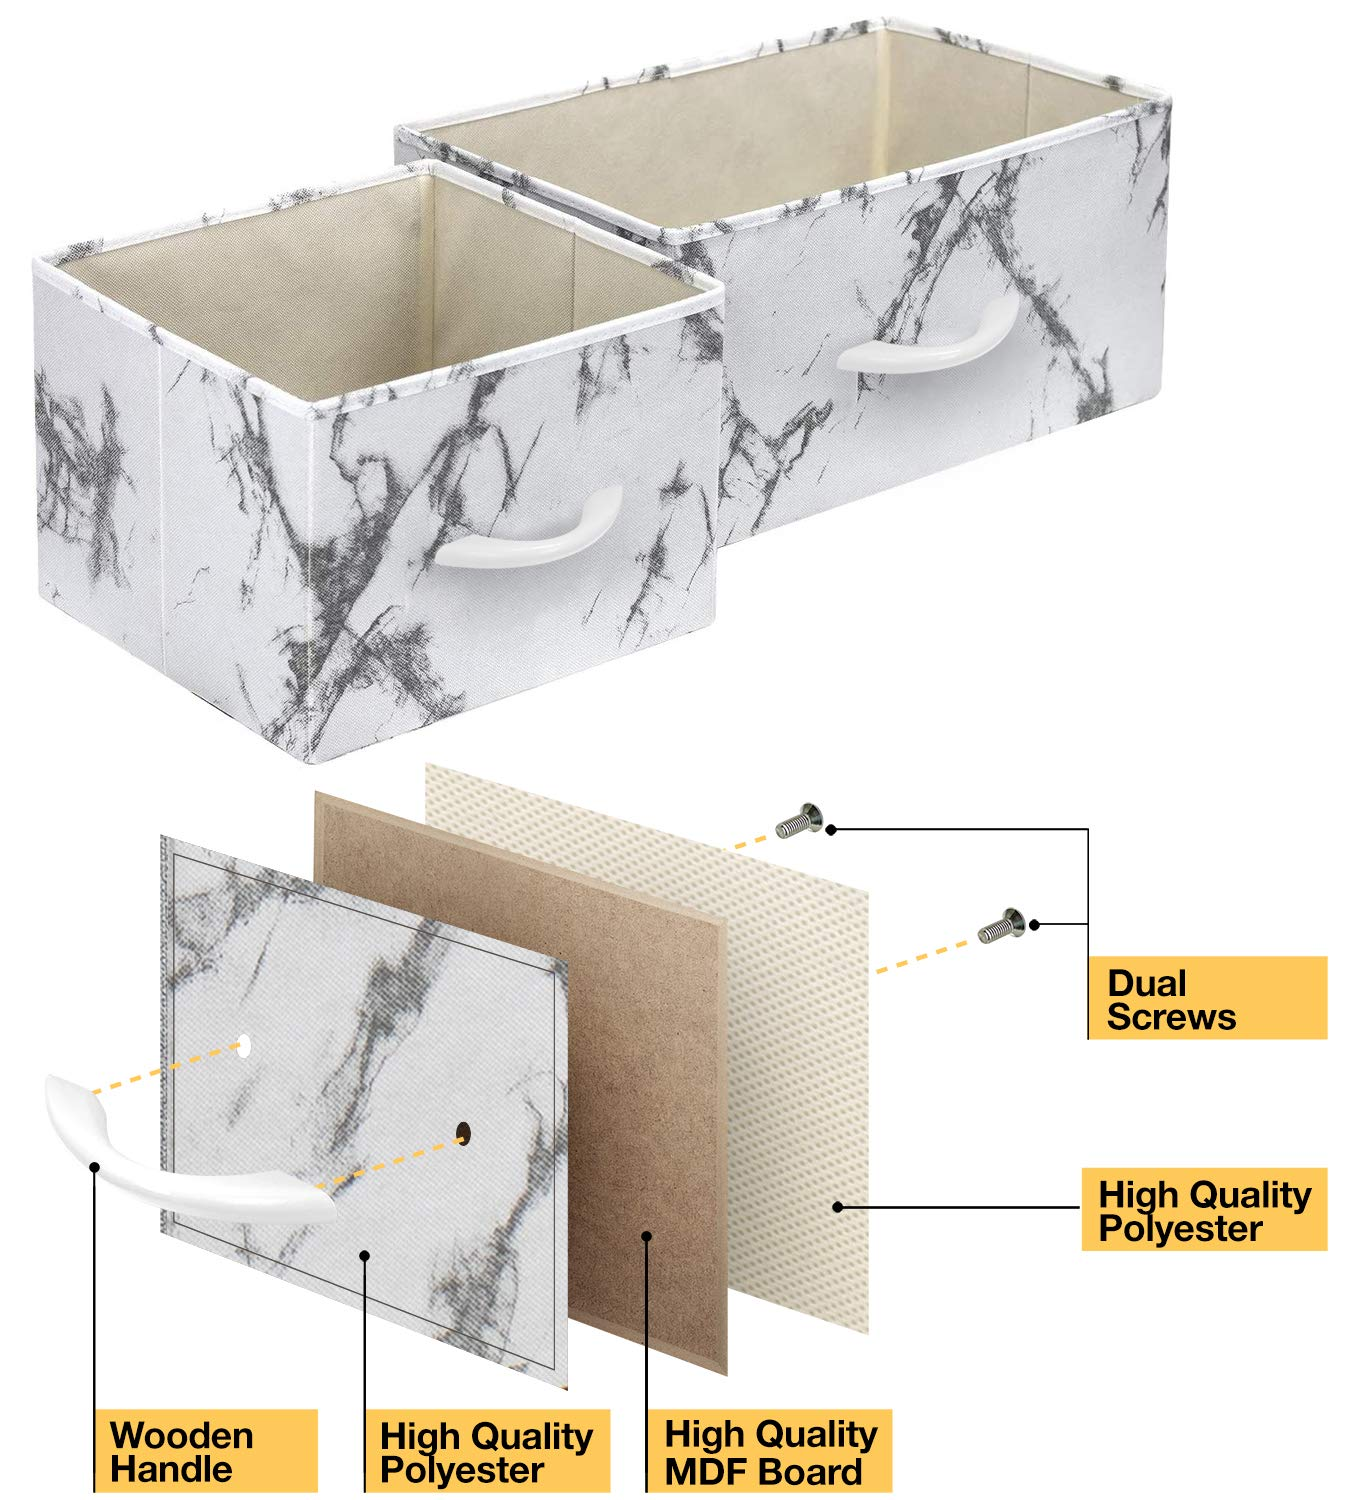 Steel Frame Marble White /– White Frame Wood Top Furniture Storage Chest Tower Unit for Bedroom Fabric Bins Office Organization Hallway Closet Sorbus Dresser with 9 Drawers